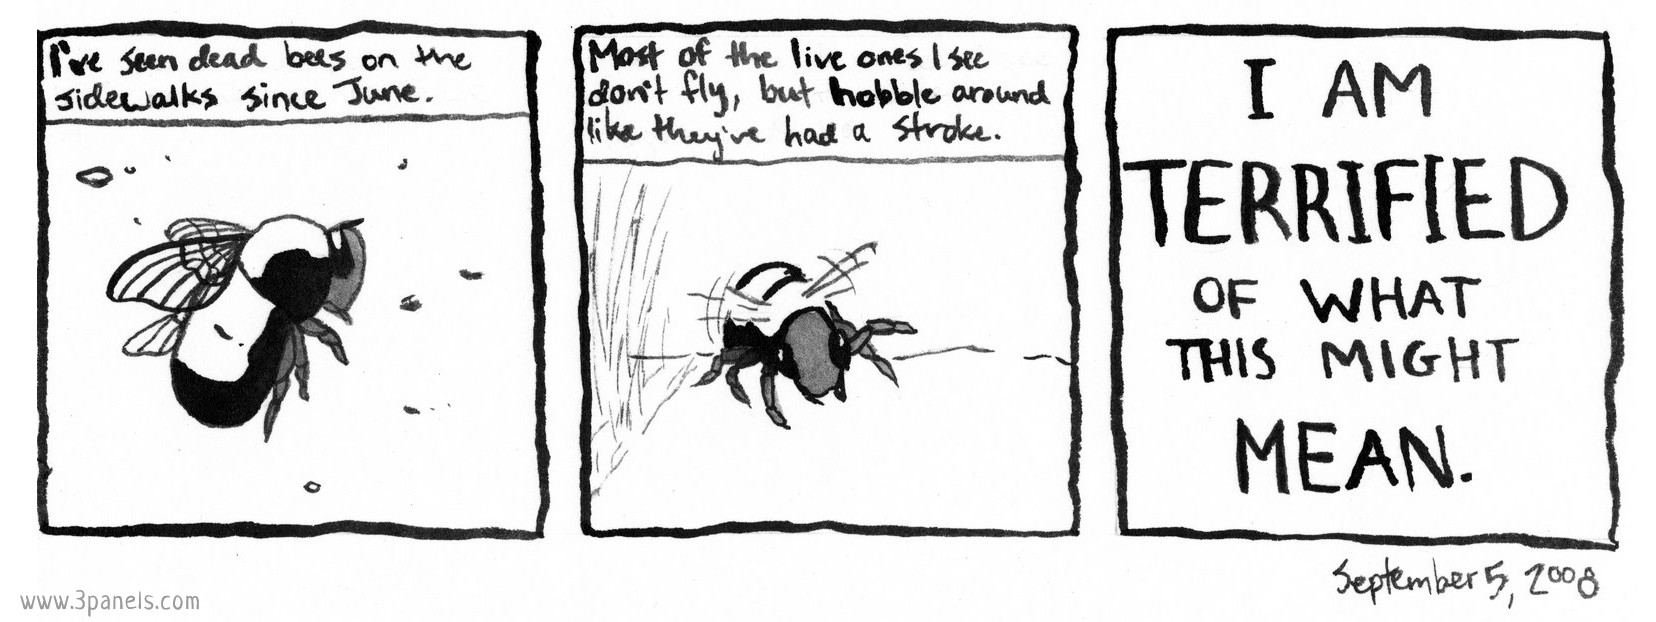 Panel 1 image: a dead bumblebee on a sidewalk. Panel 1 text: I've seen dead bees on the sidewalks since June. Panel 2 image: a live bumblebee stumbling on the ground, flapping its wings. Panel 2 text: Most of the live ones I see don't fly, but hobble around like they've had a stroke. Panel 3 text (no image): I am terrified of what this might mean.